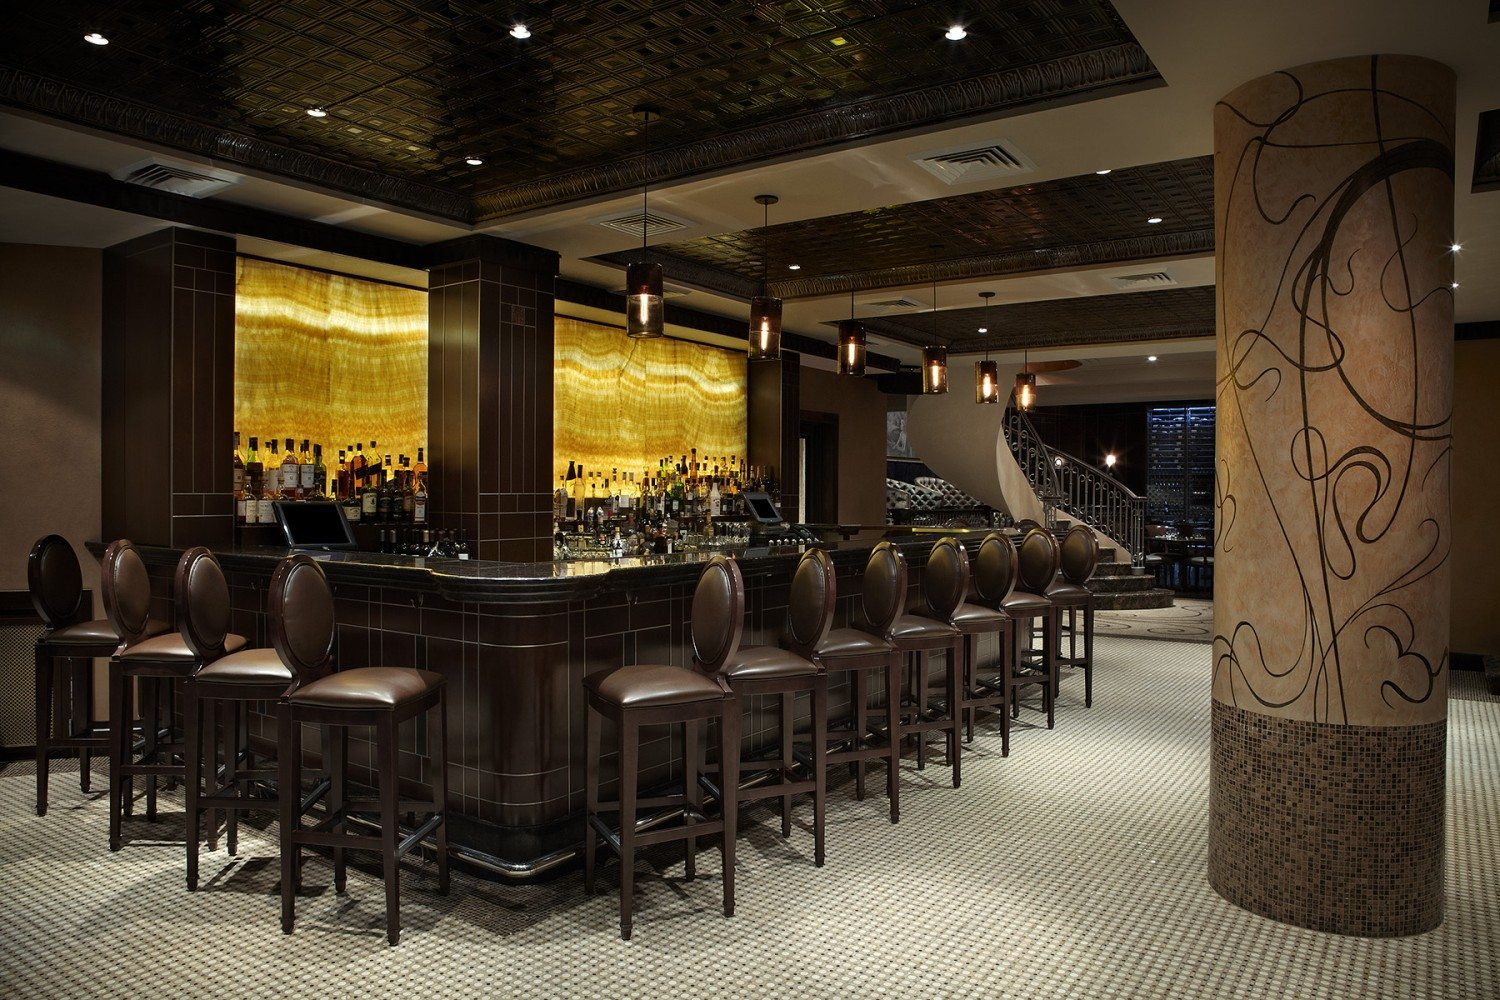 Noir will pay homage to the glamour and sophistication of classic New York, with timeless detailing and décor, upscale lounge, crafted cocktails